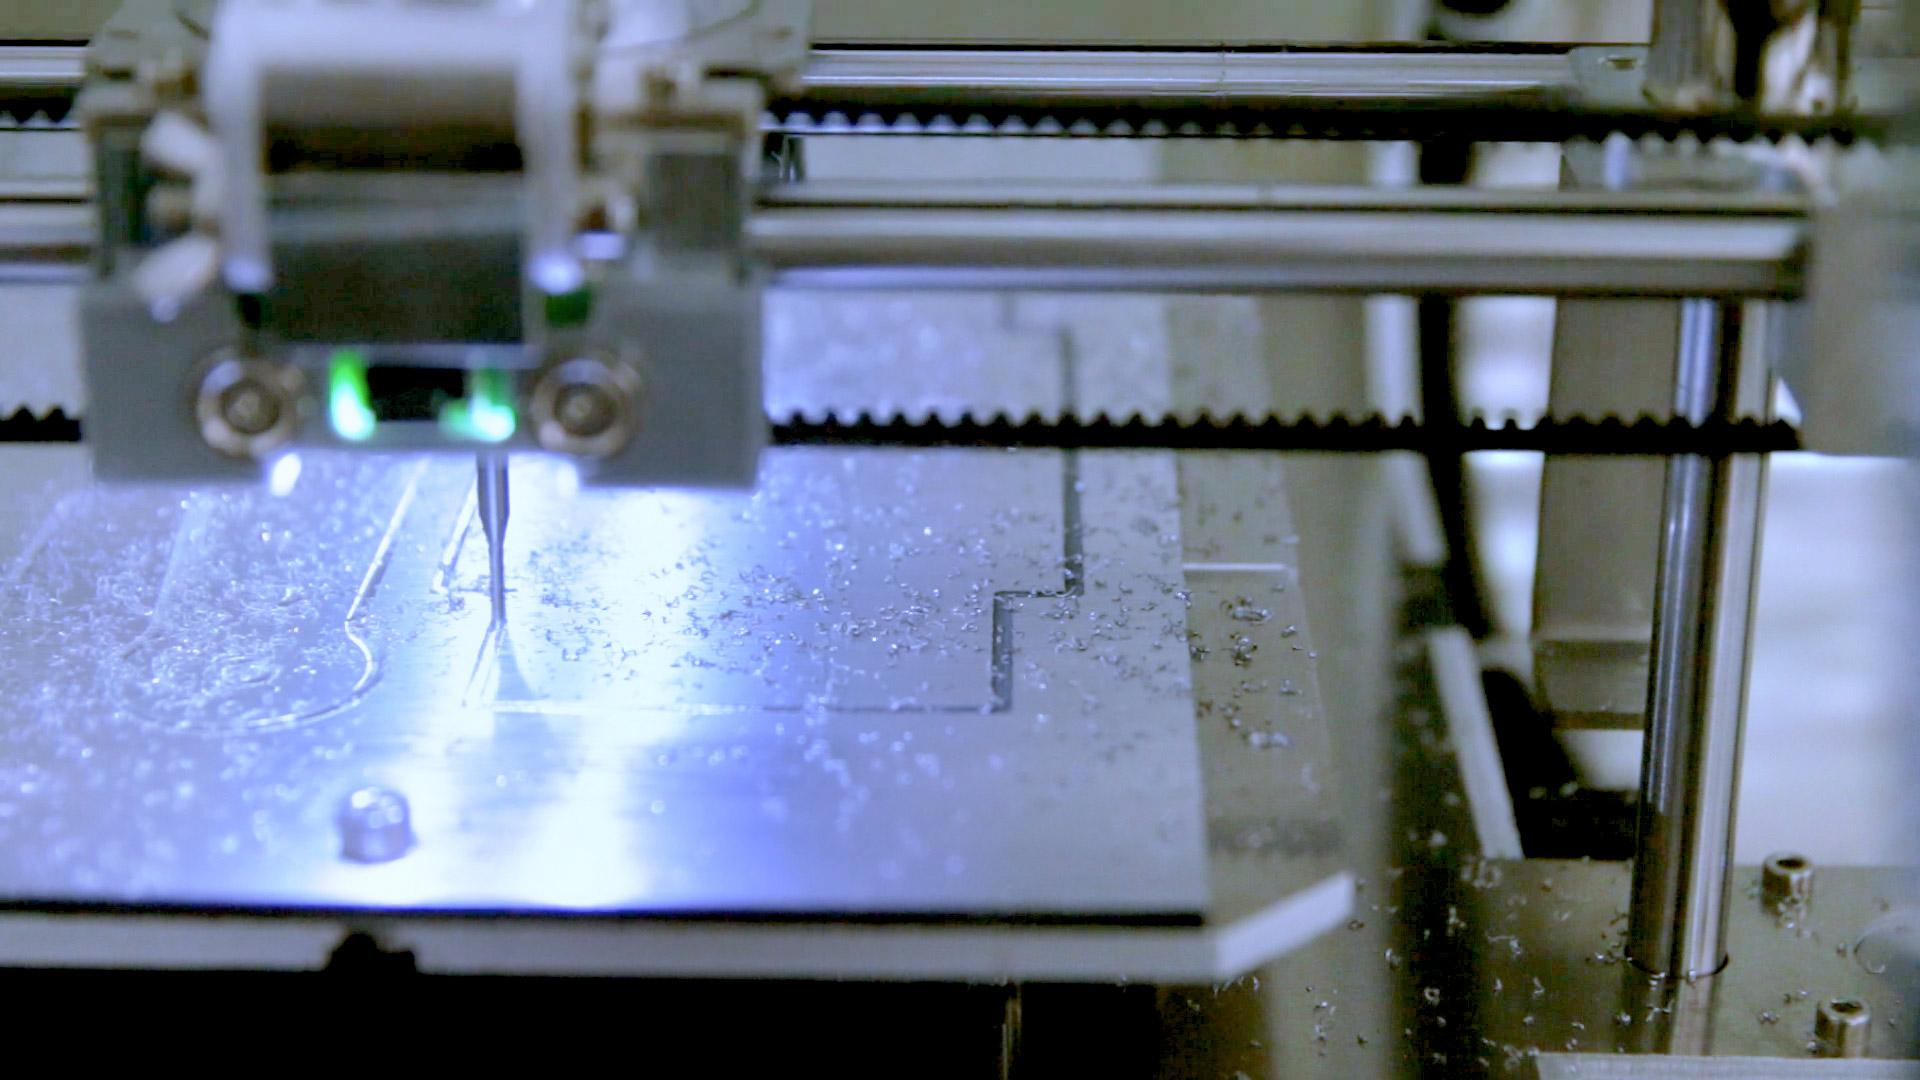 CNC milling with ZMorph VX